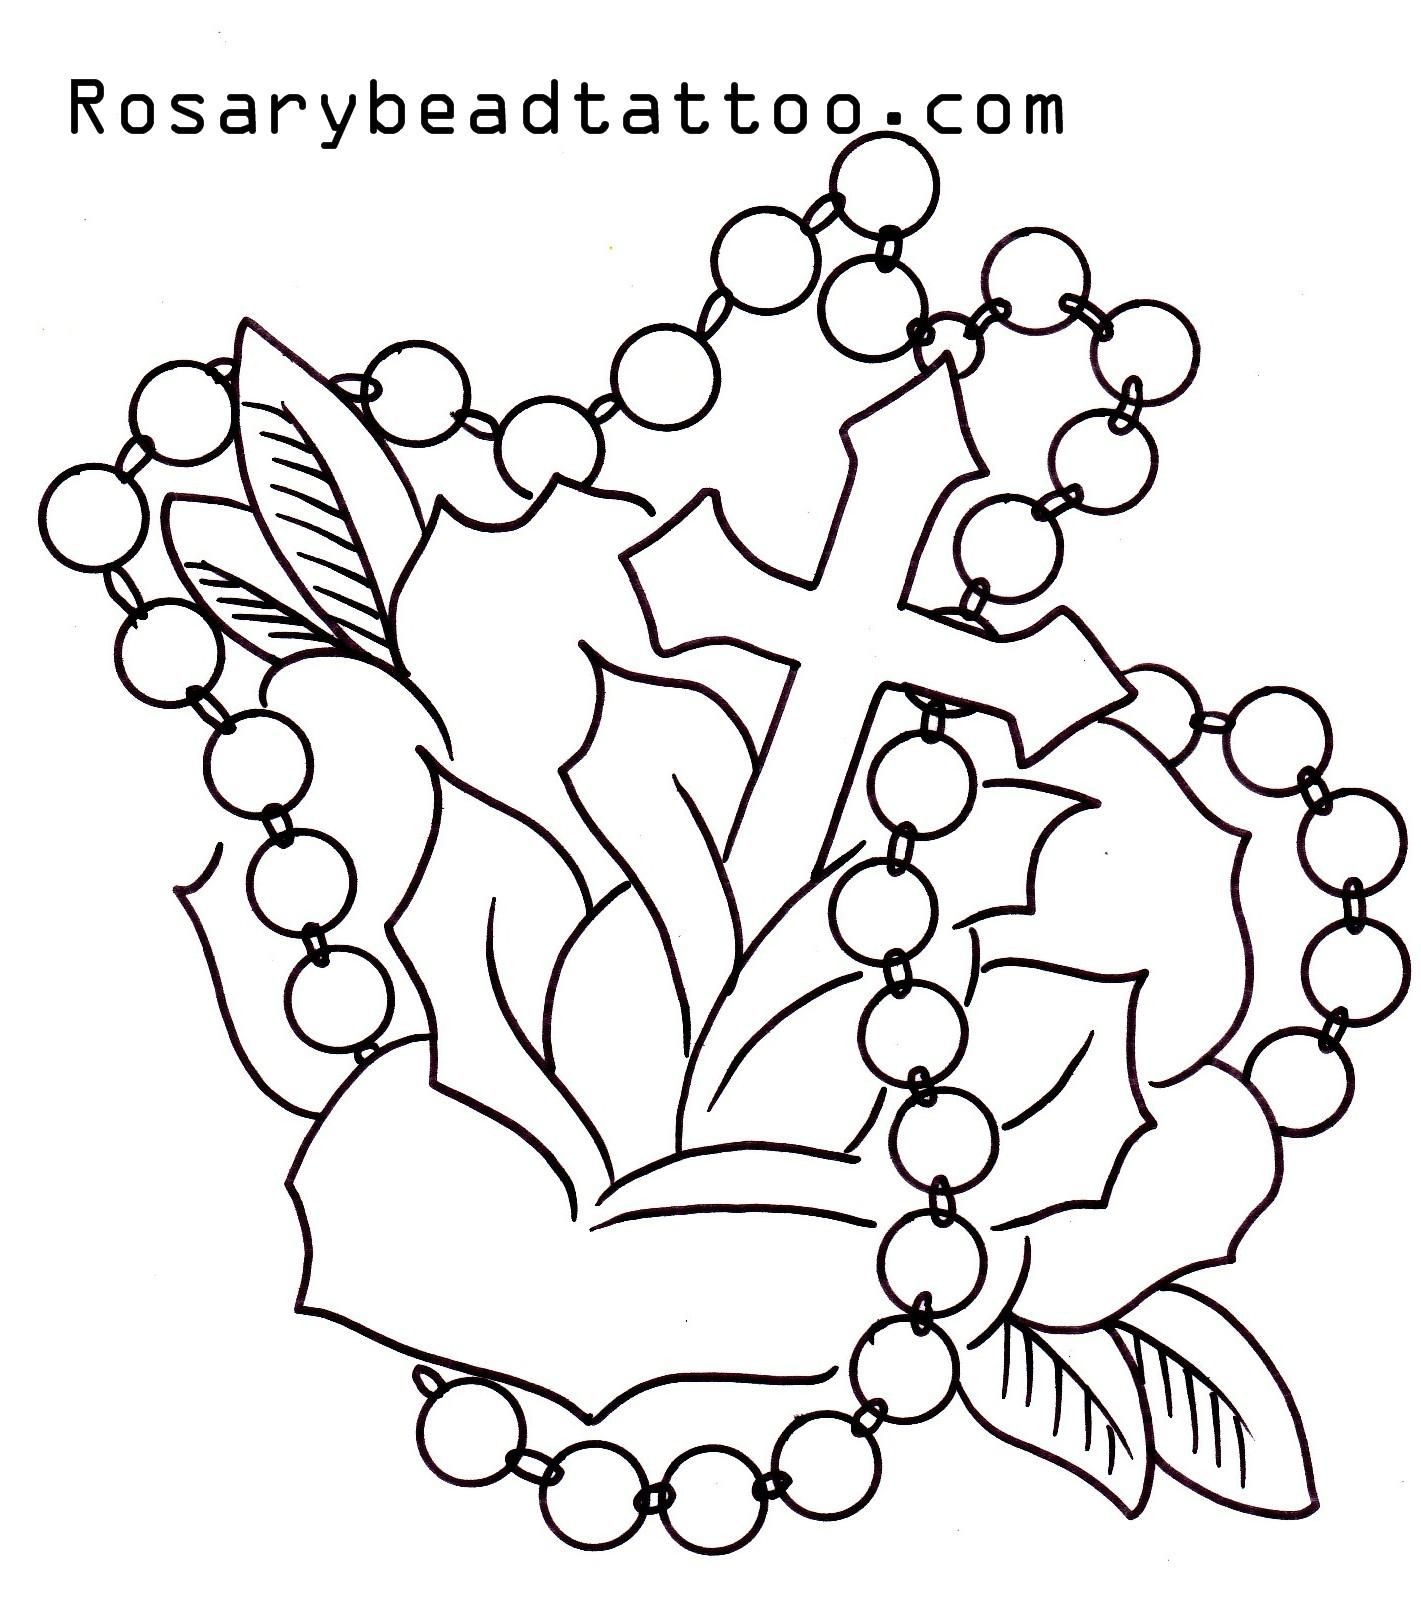 Flower With Roseary Stencils Rosary Tattoocross Tattoo Design inside dimensions 1421 X 1610